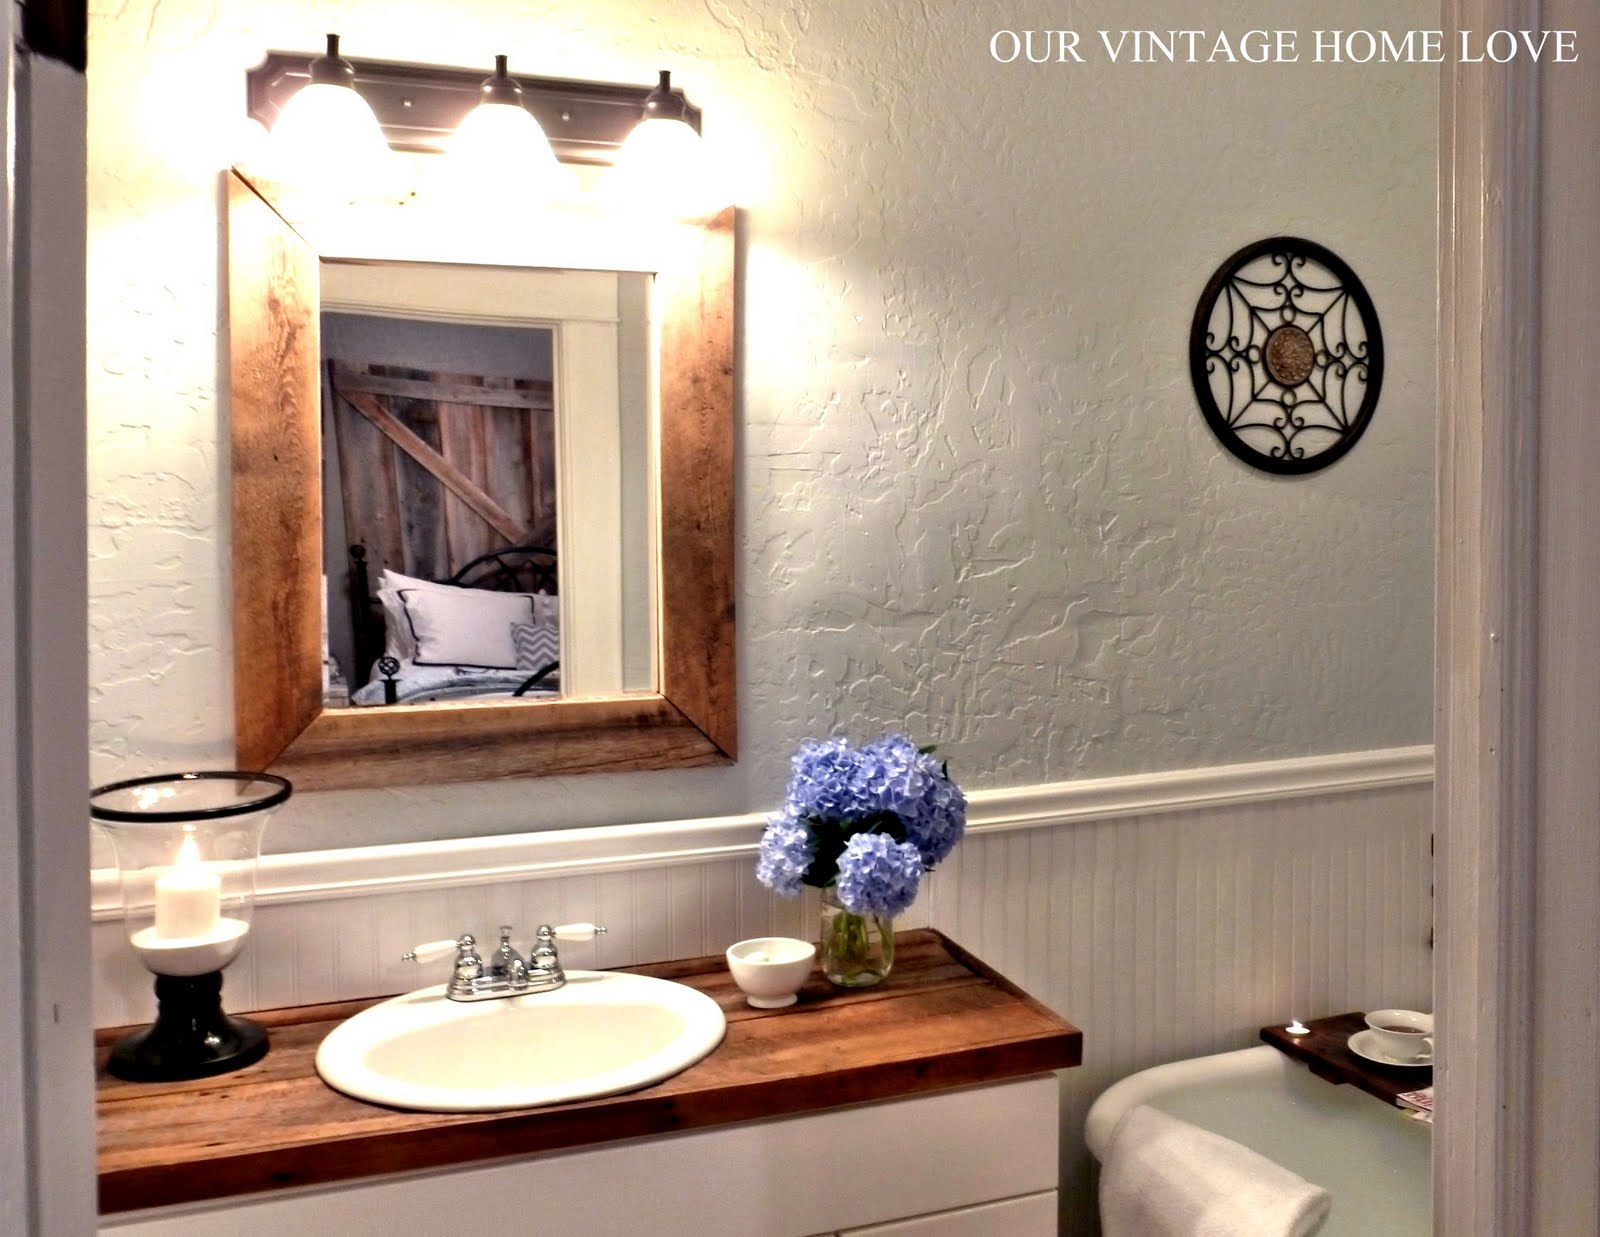 Vintage Home Love Master Bath Redo Featuring Reclaimed Barn Wood